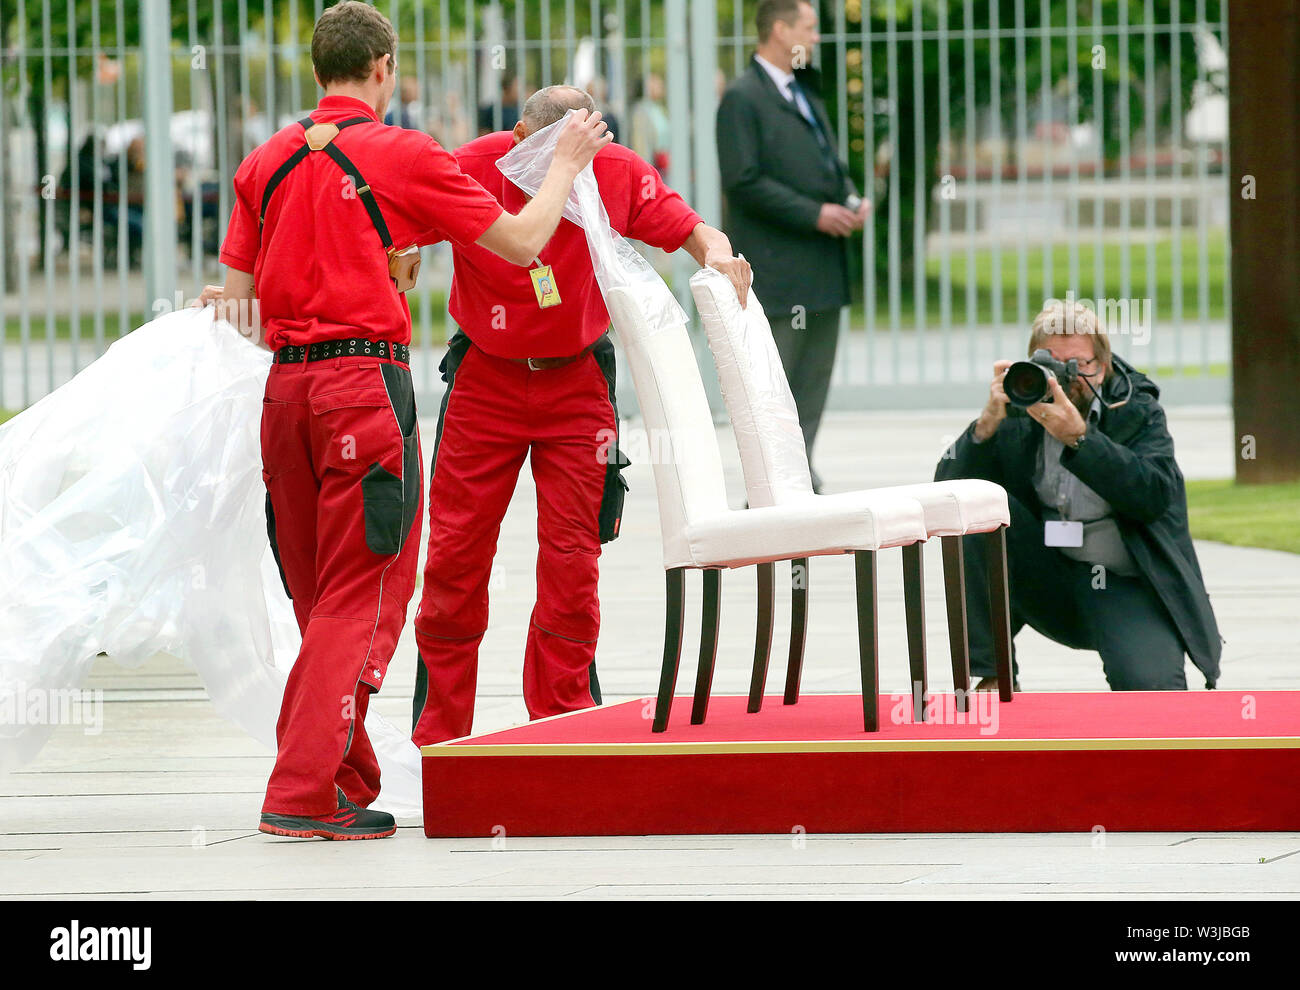 Berlin, Germany. 16th July, 2019. Employees of the Chancellery remove a rain shield from chairs in the Federal Chancellery's courtyard of honour on which Chancellor Merkel and the Prime Minister of Molda, Sandu, will watch the national anthems being played. After several tremors during public appearances such as this, Merkel performed the ceremony for the first time last week, partly sitting down. Credit: Wolfgang Kumm/dpa/Alamy Live News - Stock Image